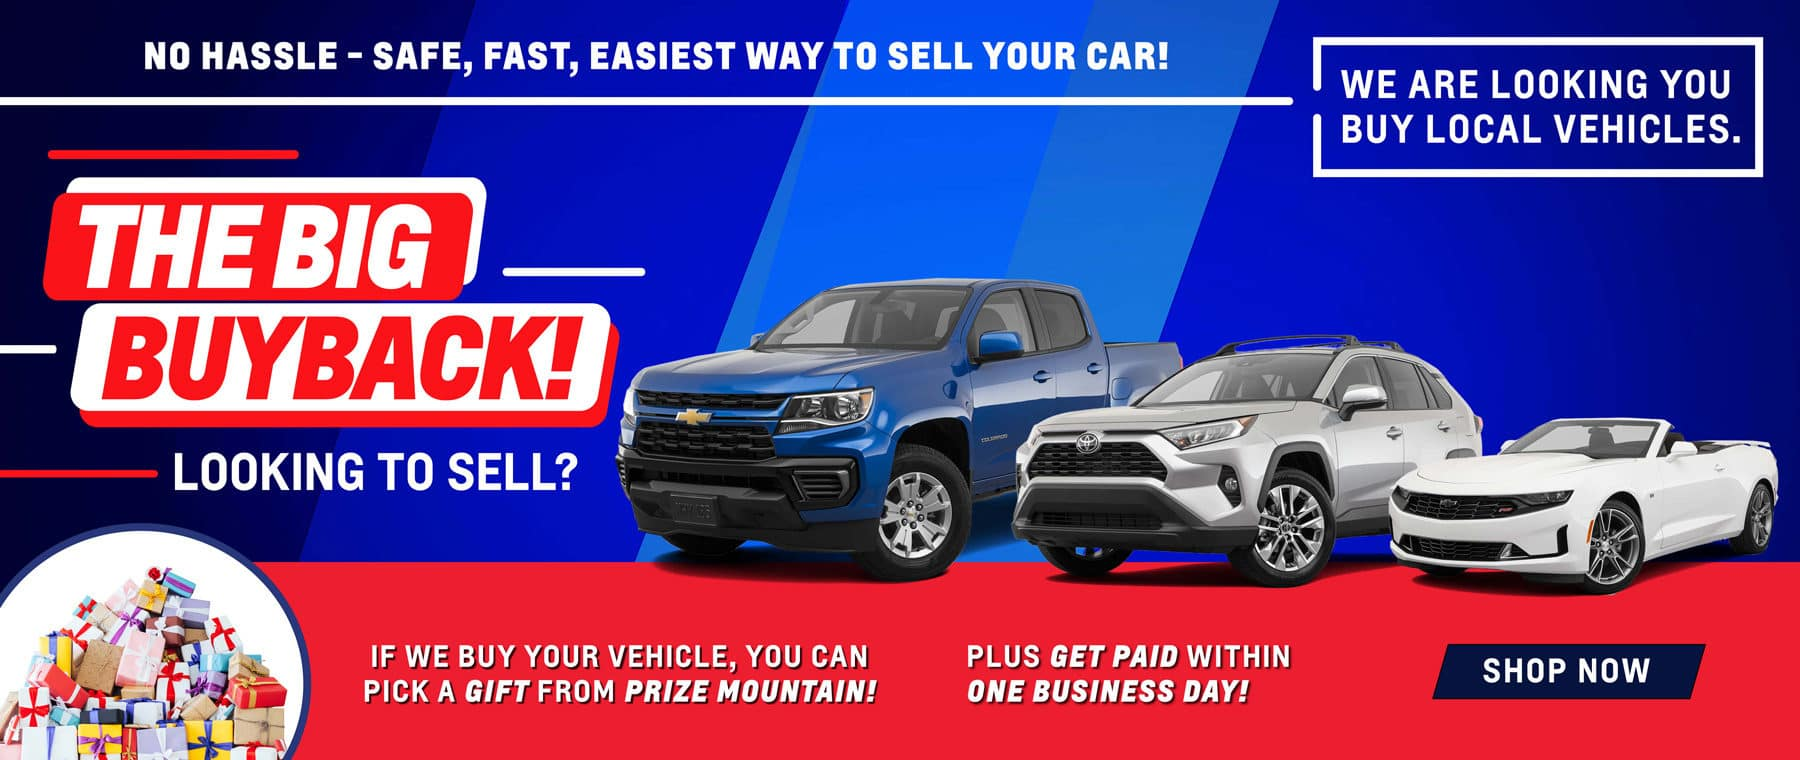 1788764_SMP_Ww-will-buy-your-vehicle_WB